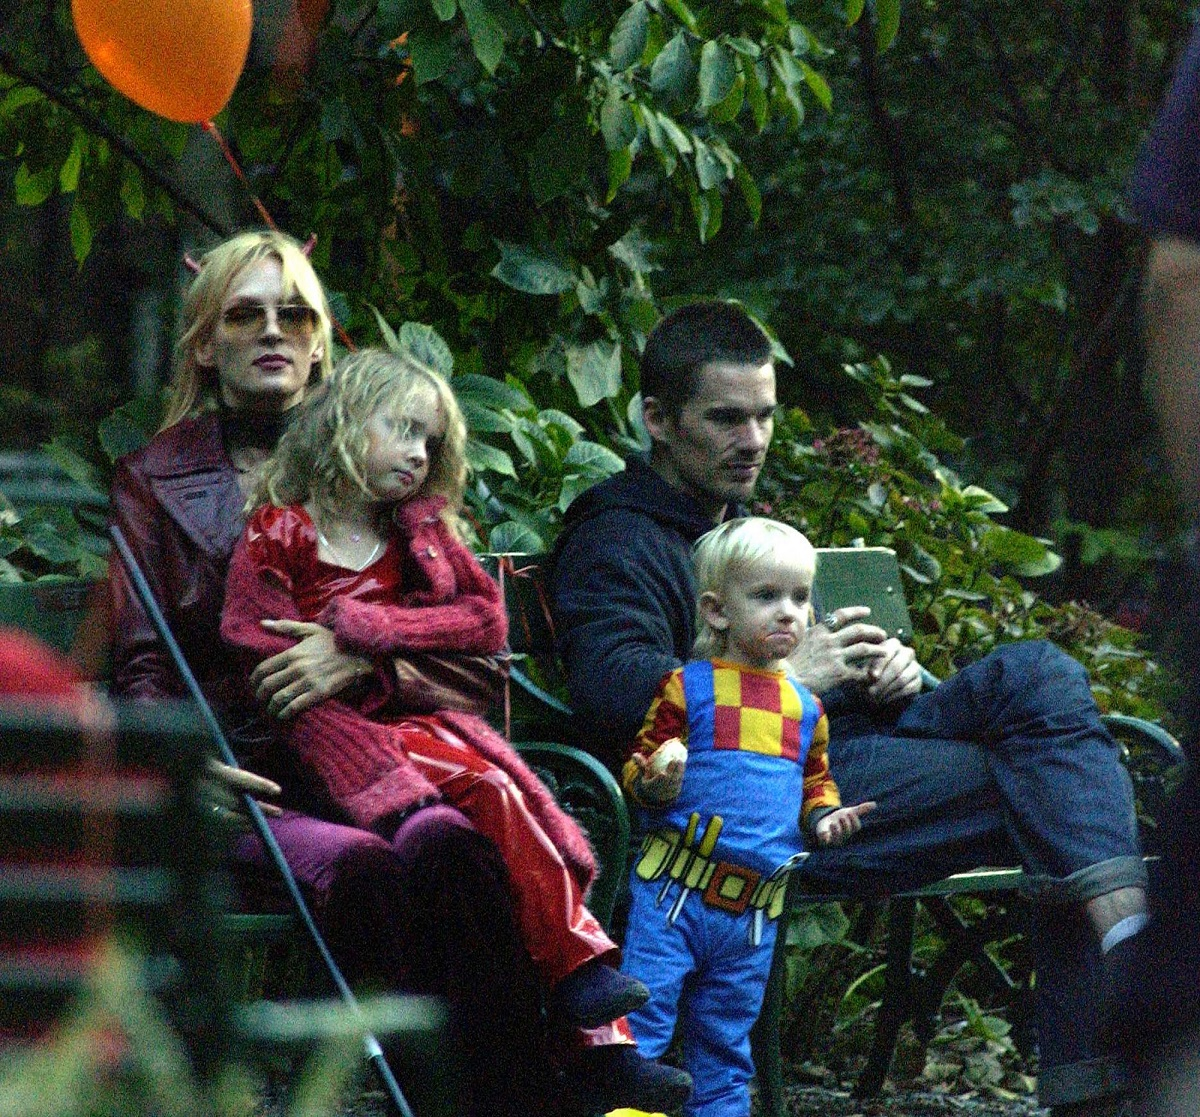 Ethan Hawk visits Uma Thurman and her children for Halloween on October 1, 2003 in New York City.